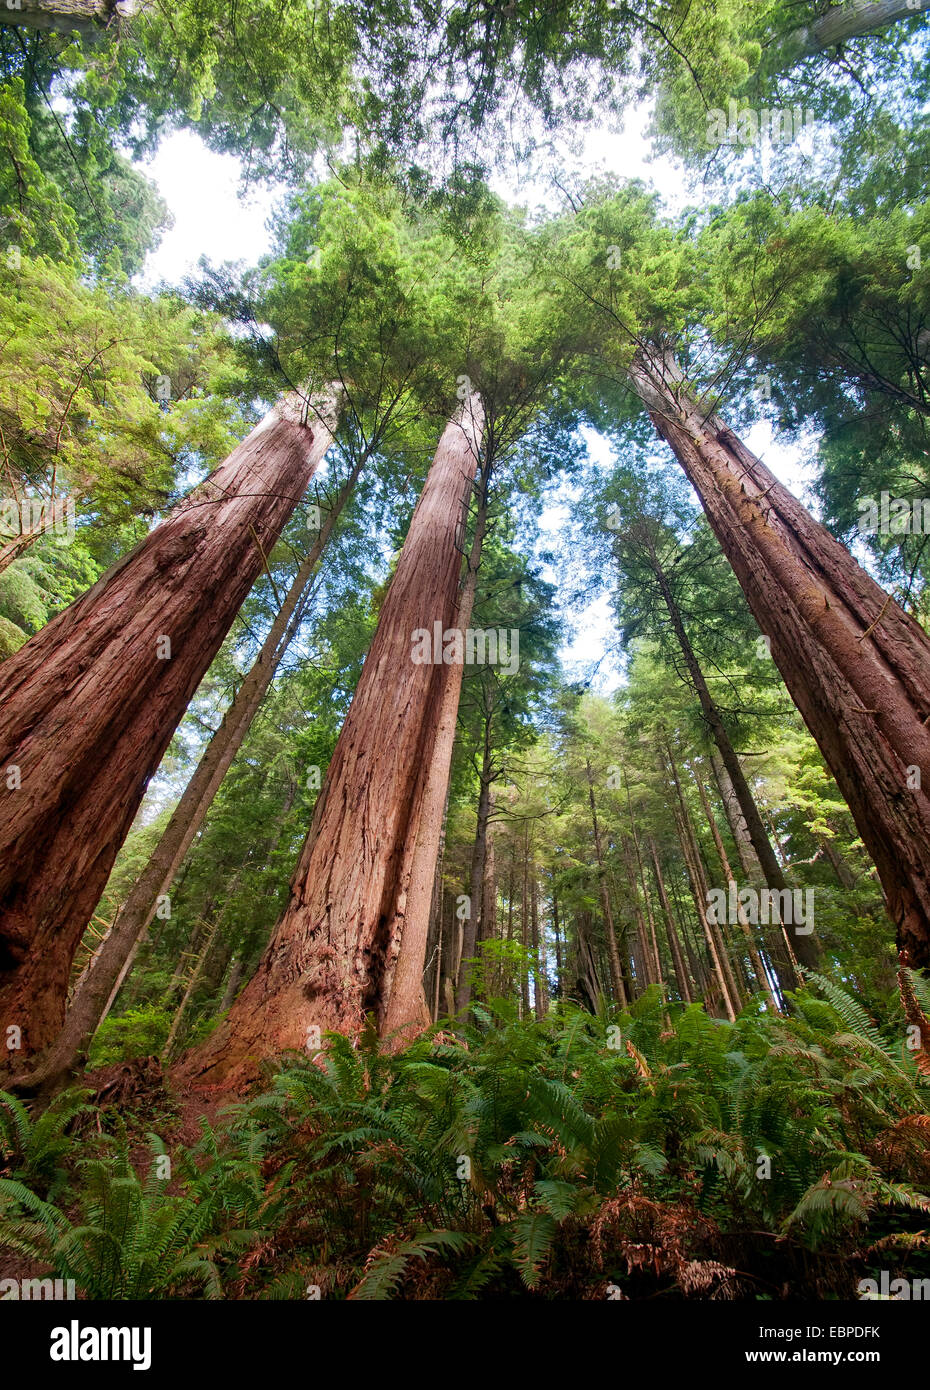 Sequoia, Redwood forest - Stock Image